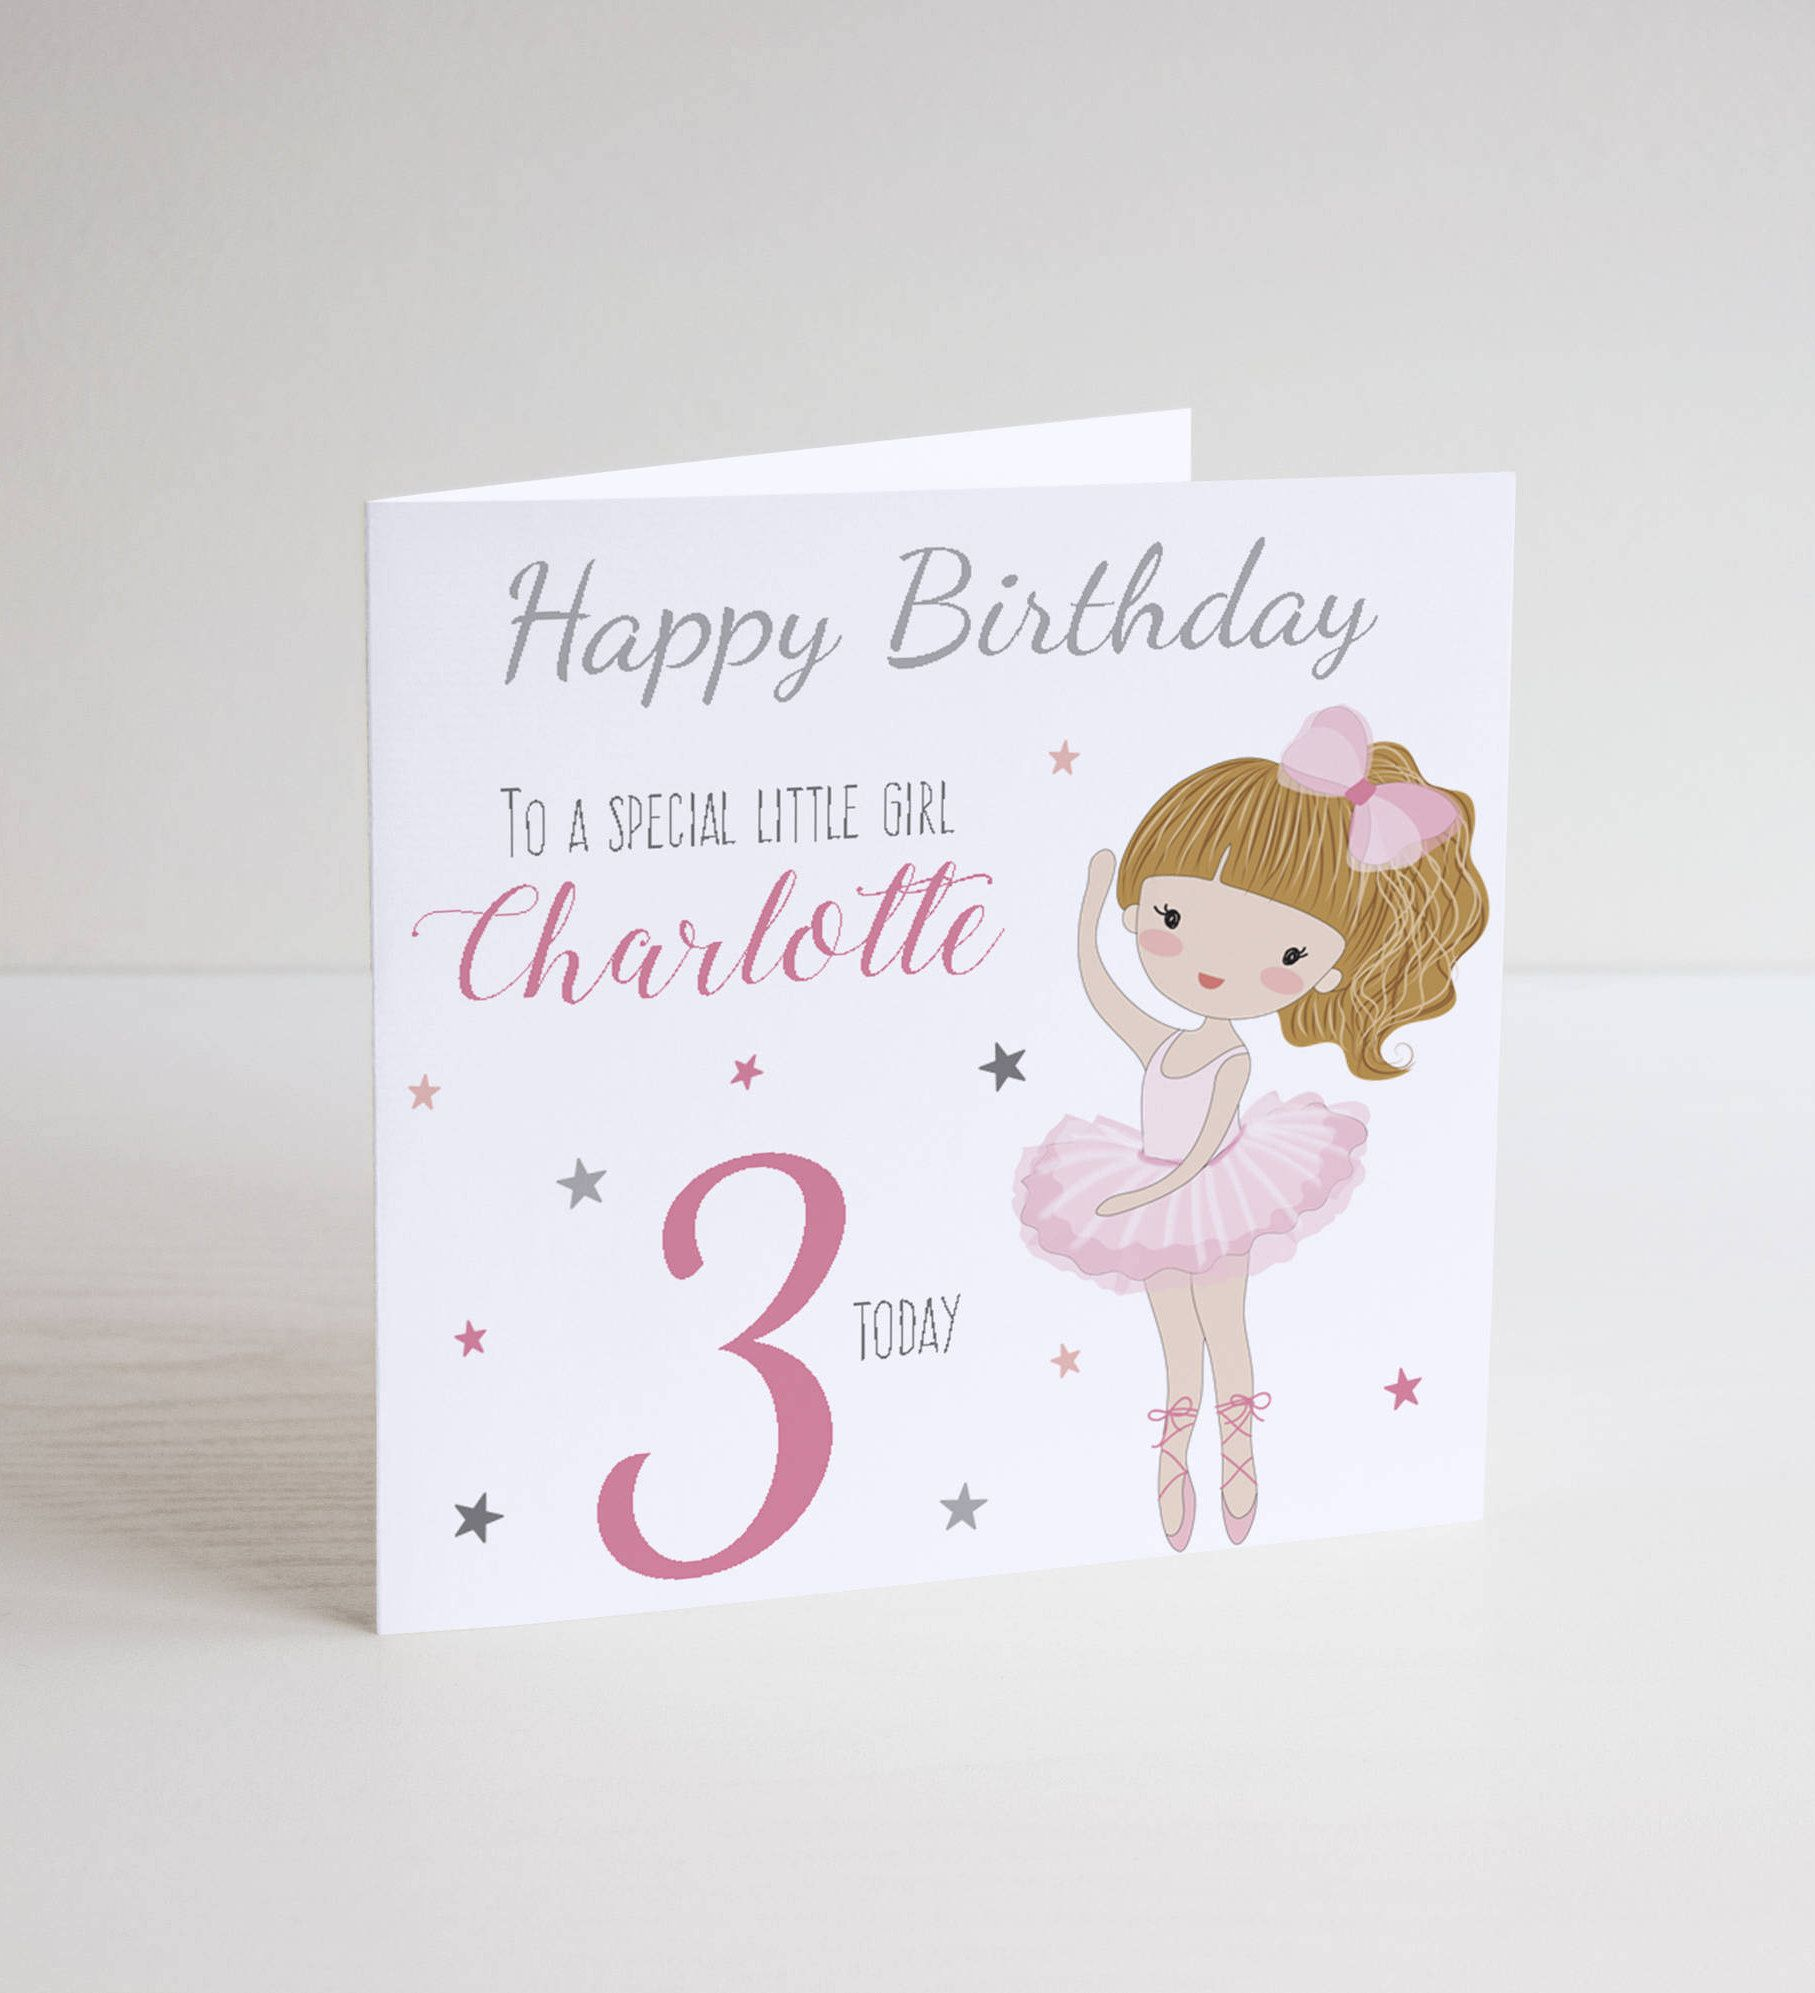 Personalised Ballerina Ballet Birthday Card Girl Greeting Dancer Daughter Sister Niece 1st 2nd 3rd 4th 5th 6th 7th 8th By Owltreedesigns22